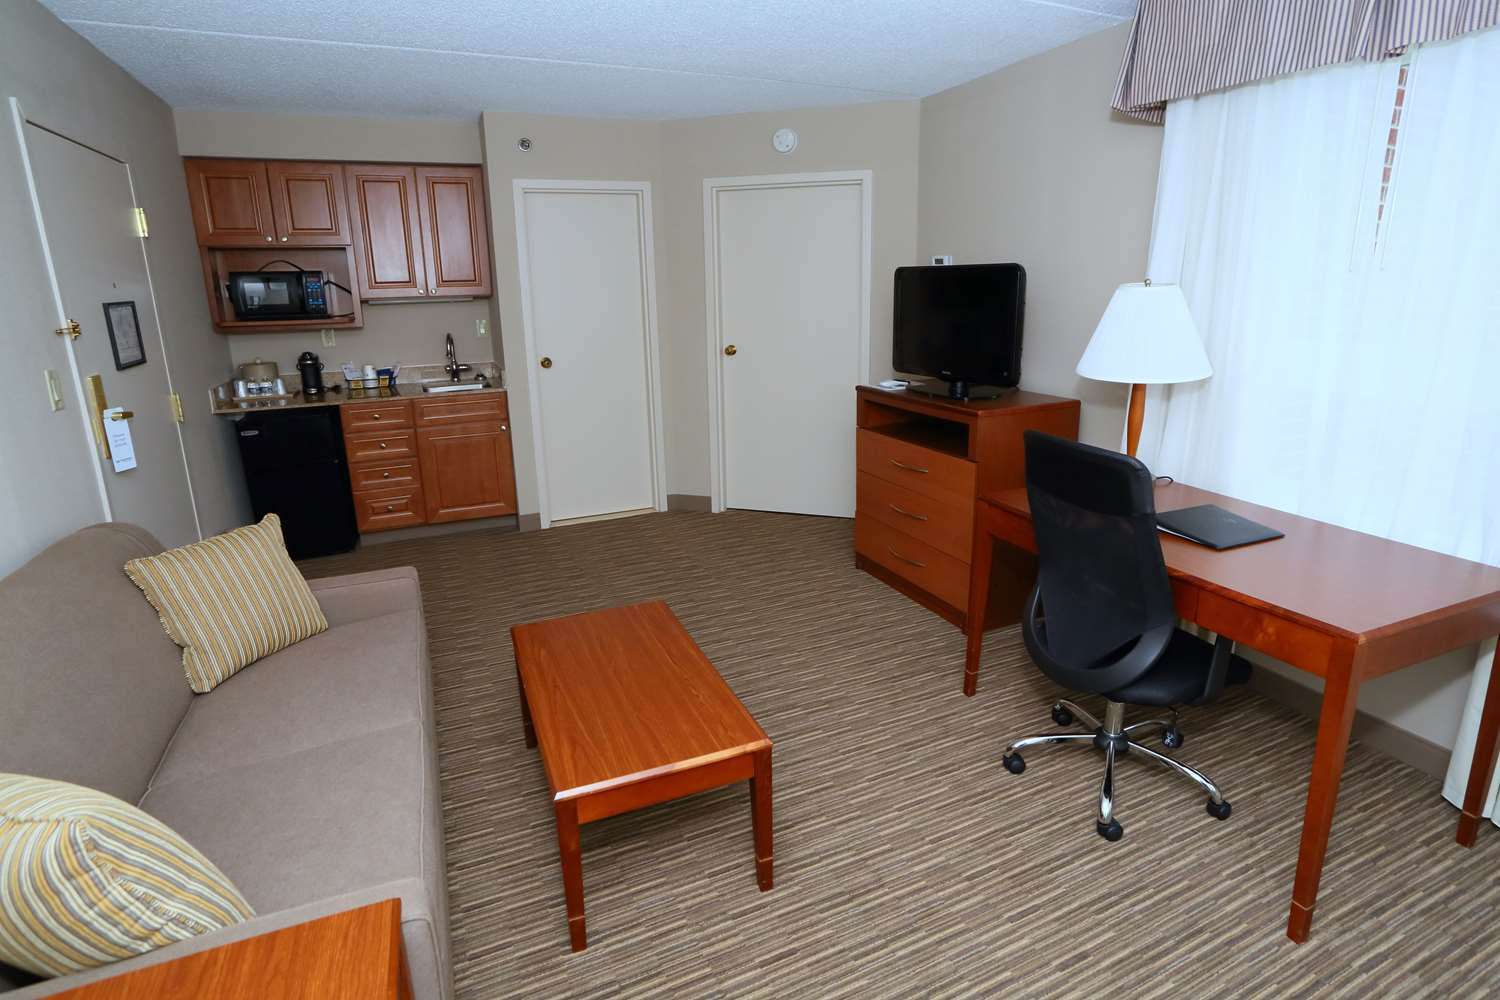 Our Suites Offer An Living Room With Work Desk Sleeper Sofa And Television